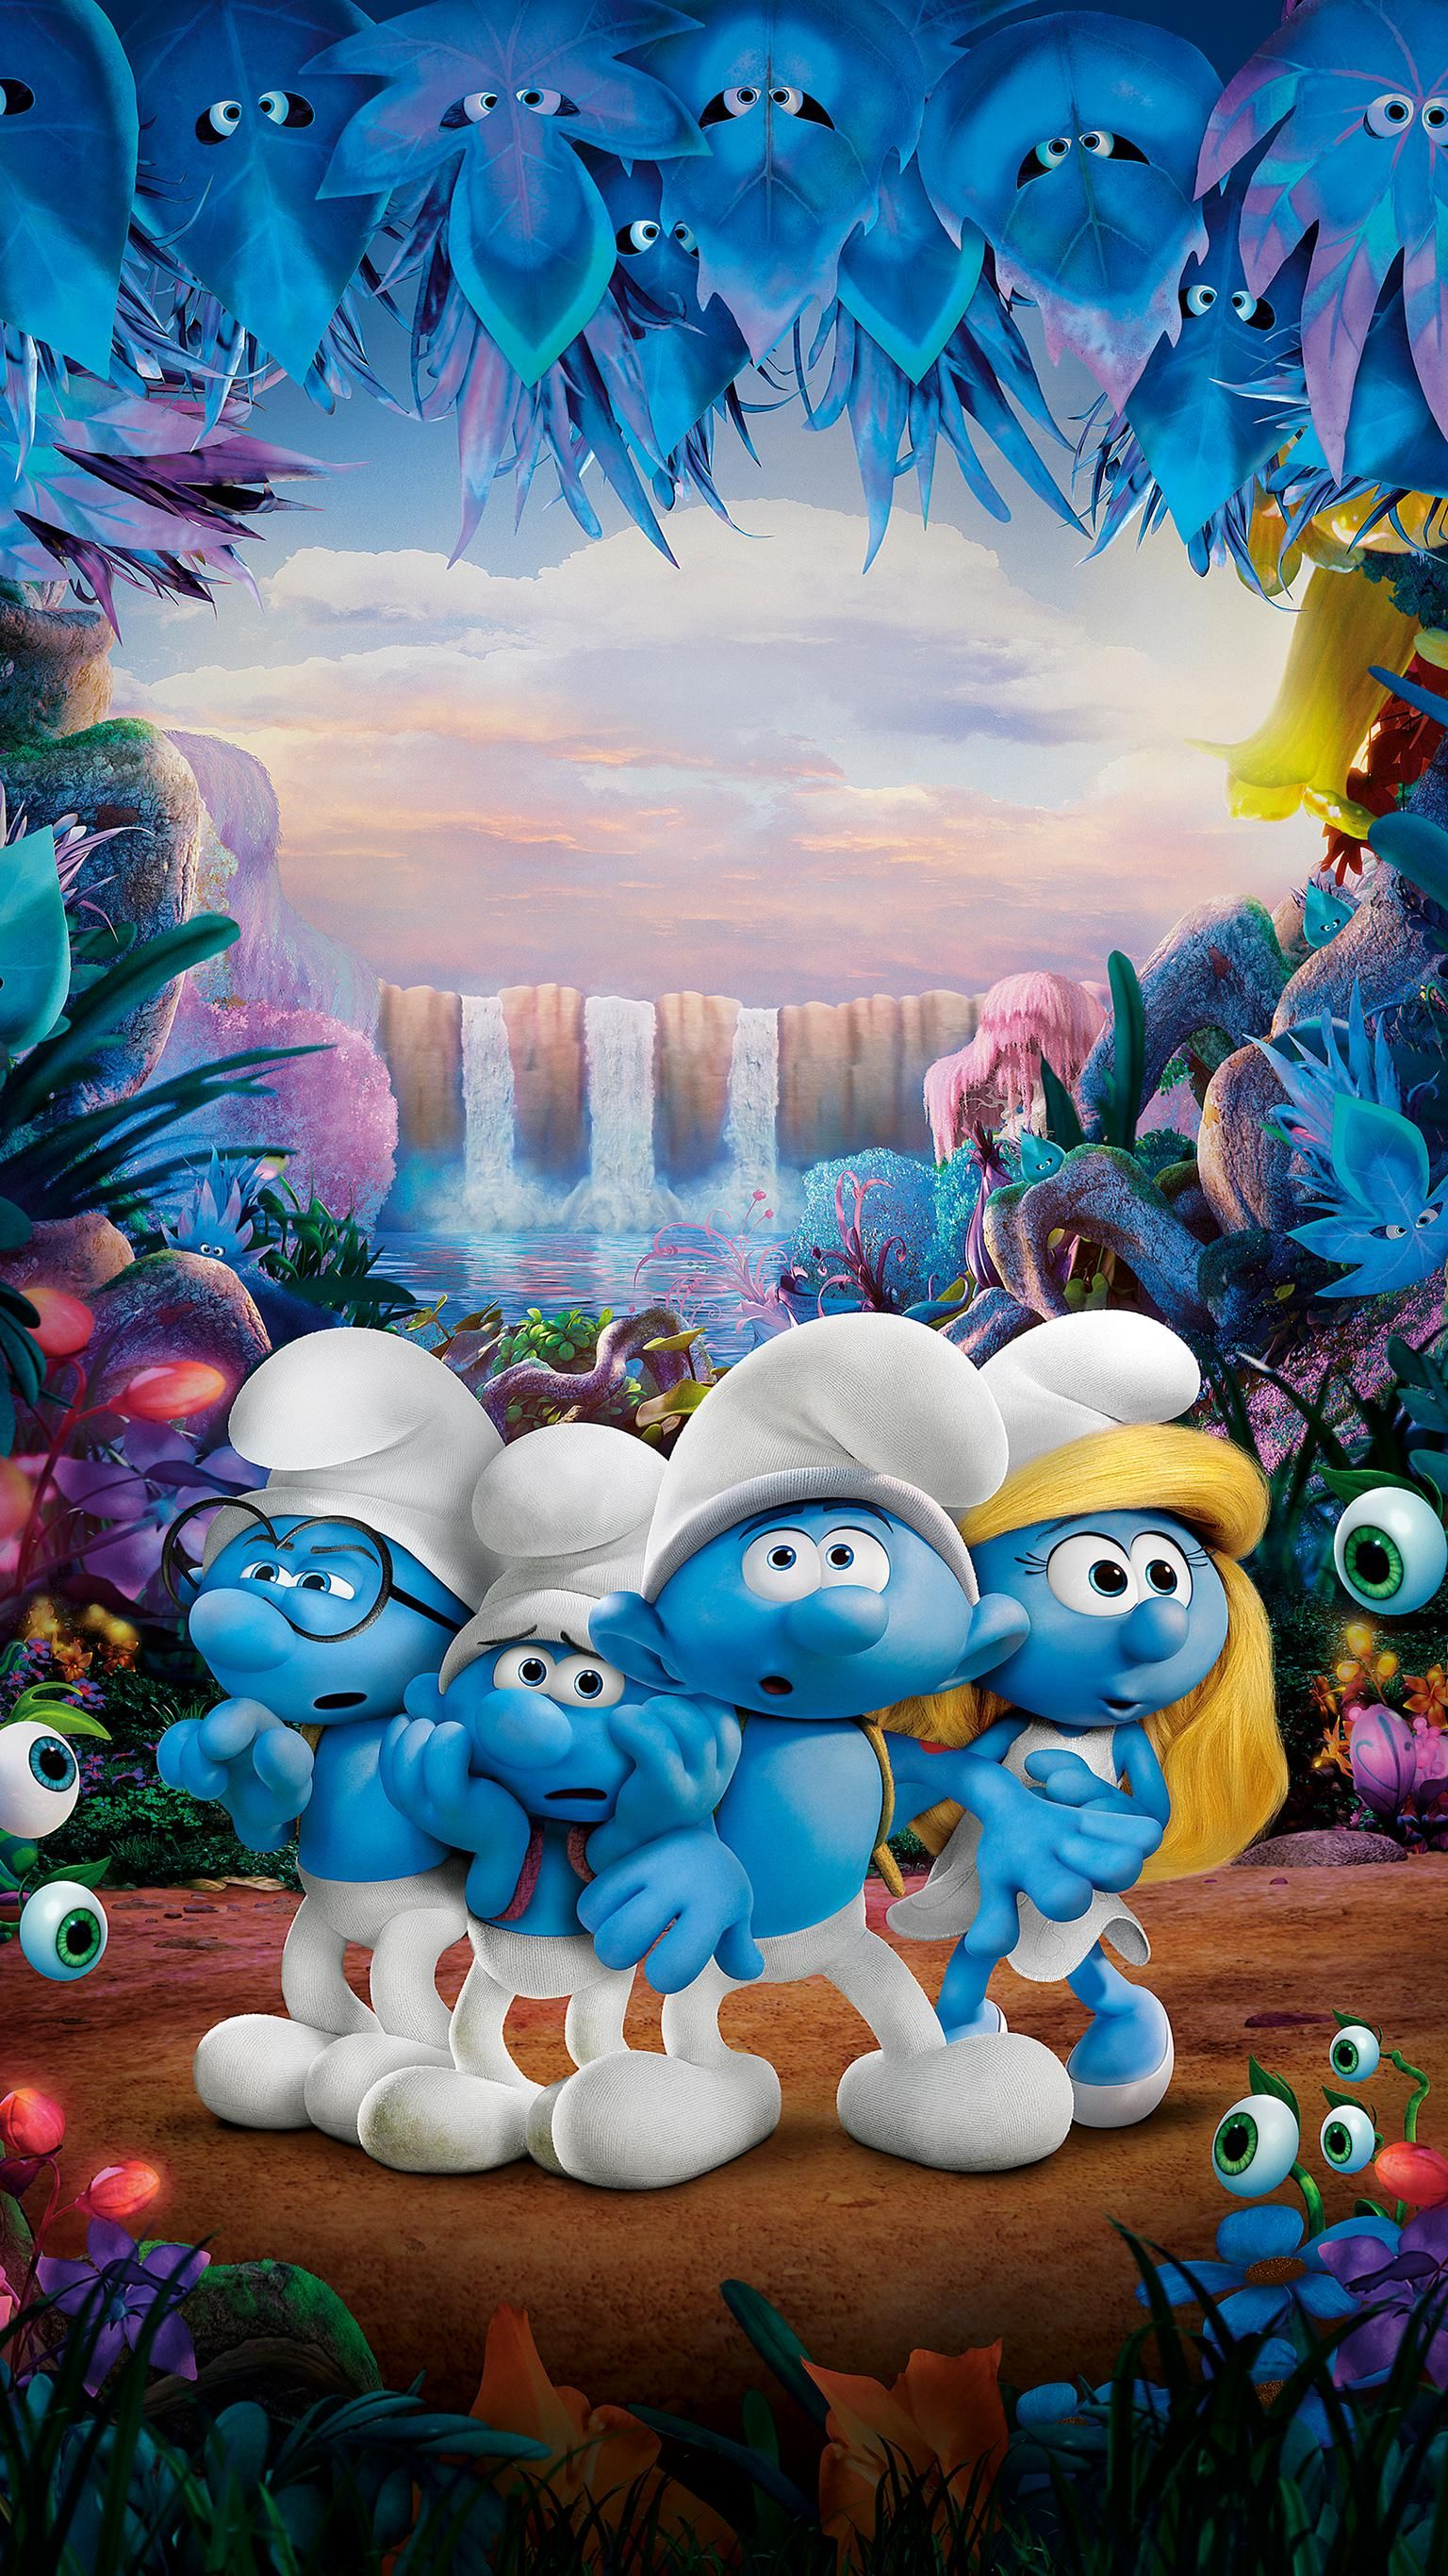 Smurfs The Lost Village (2017) Phone Wallpaper Smurfs